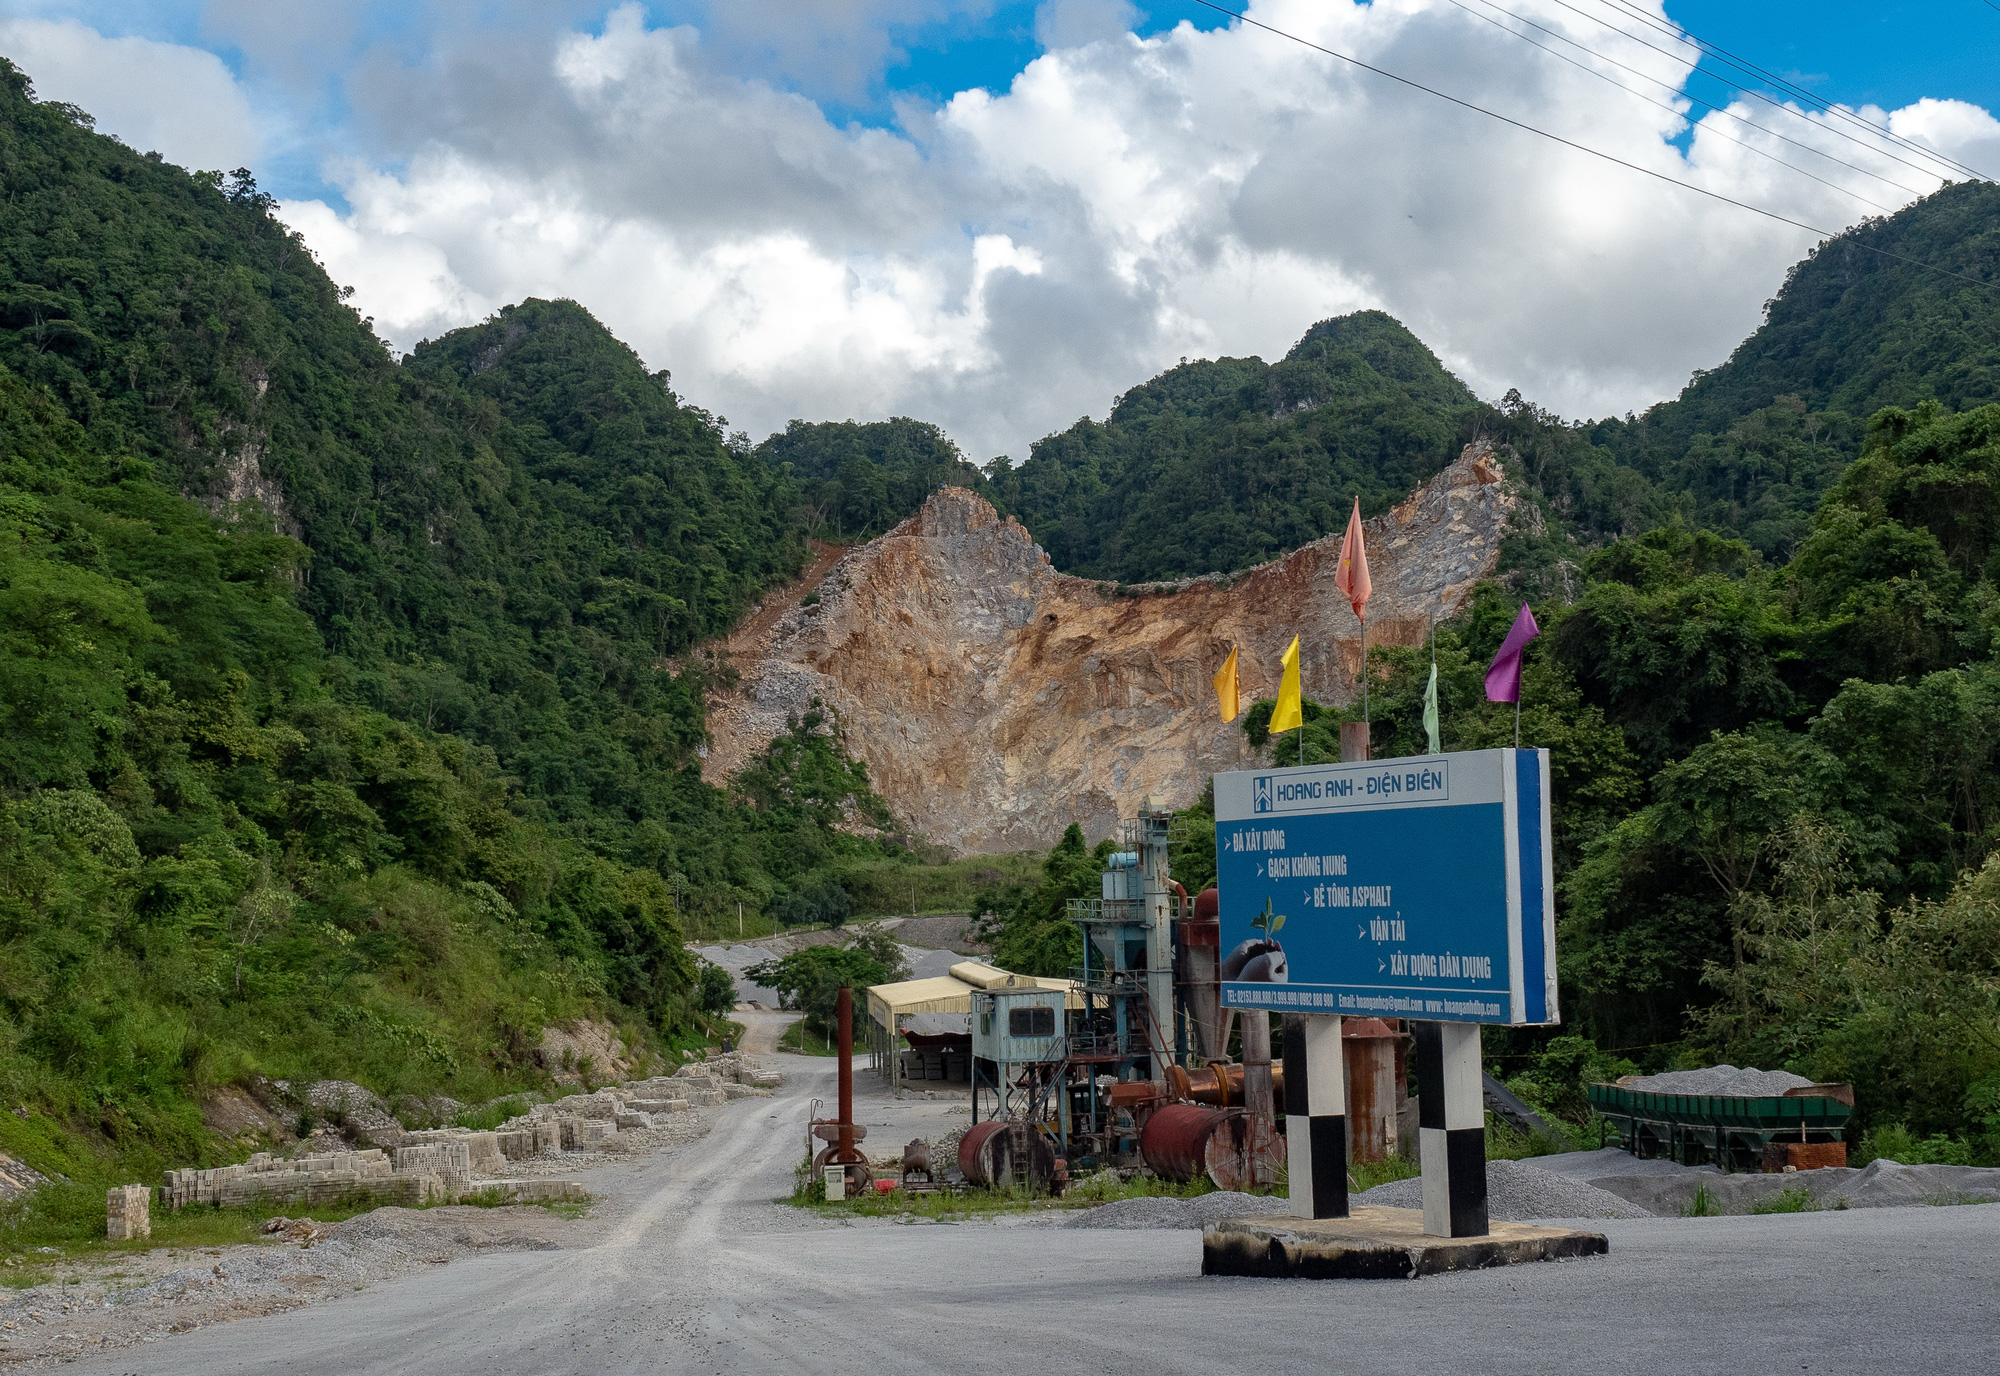 Quarry workers cling to cliffs for life in northern Vietnam